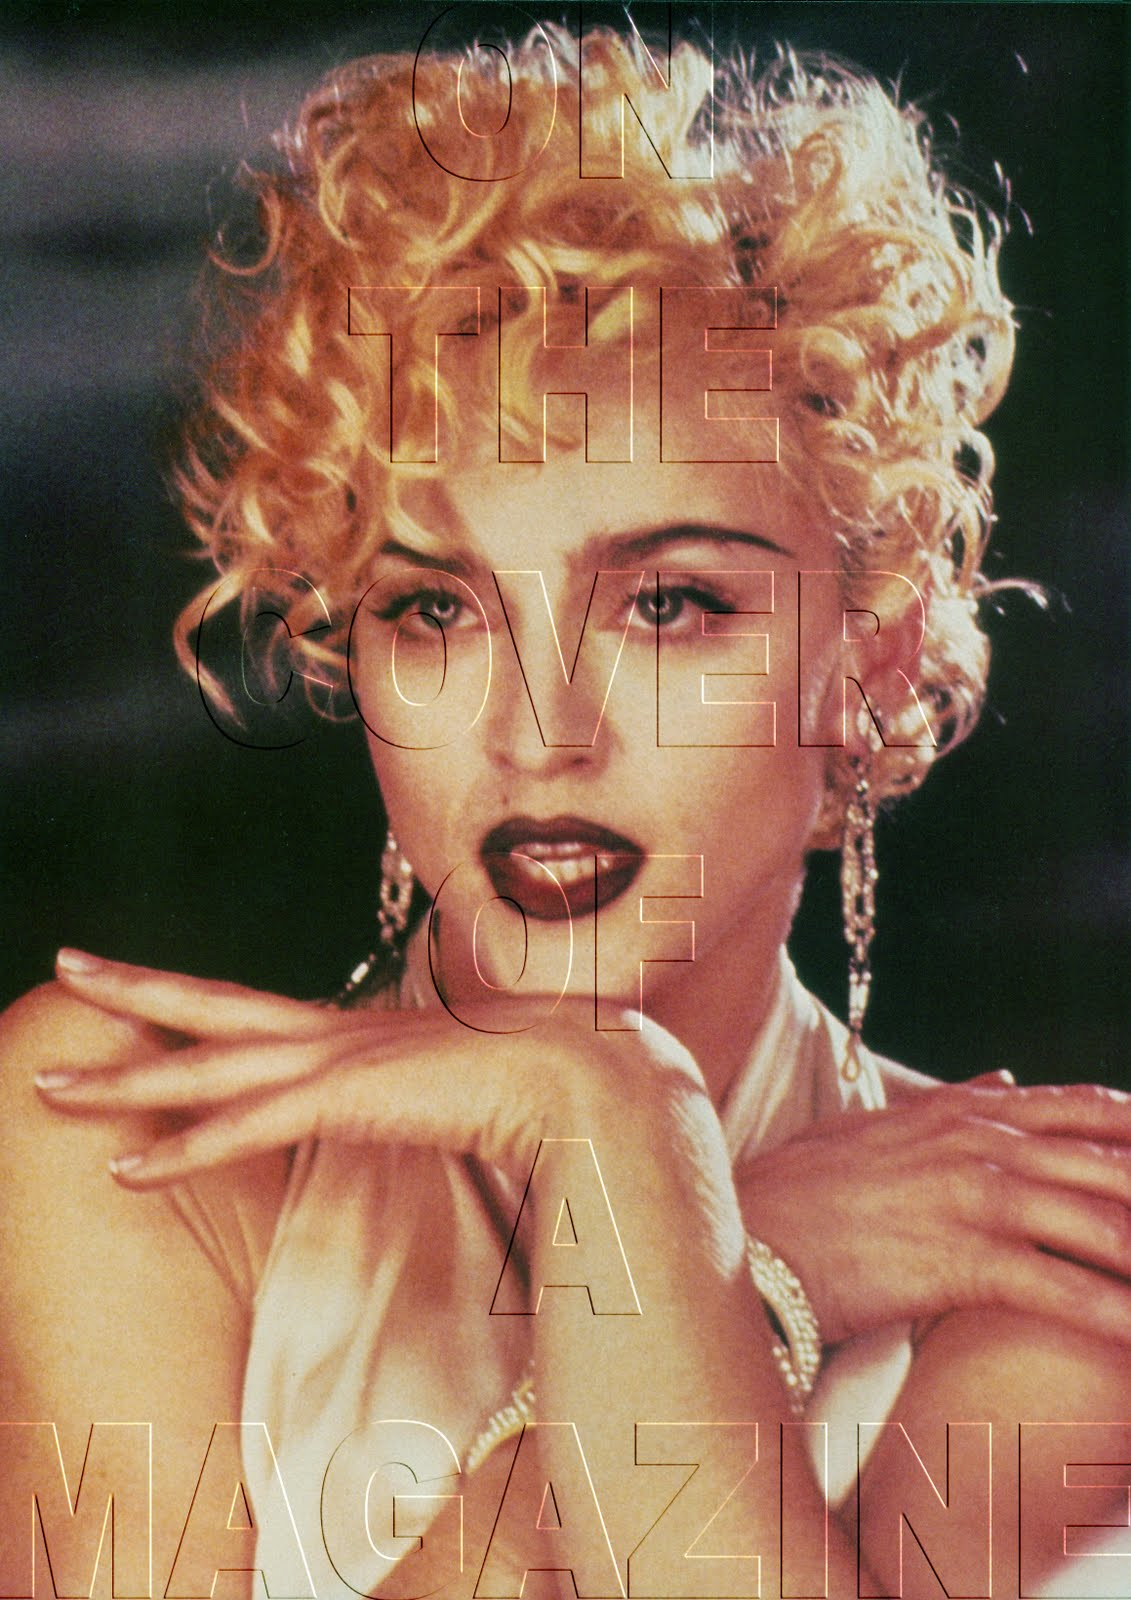 1990 Vogue Video Still Photographed by Lorraine Day